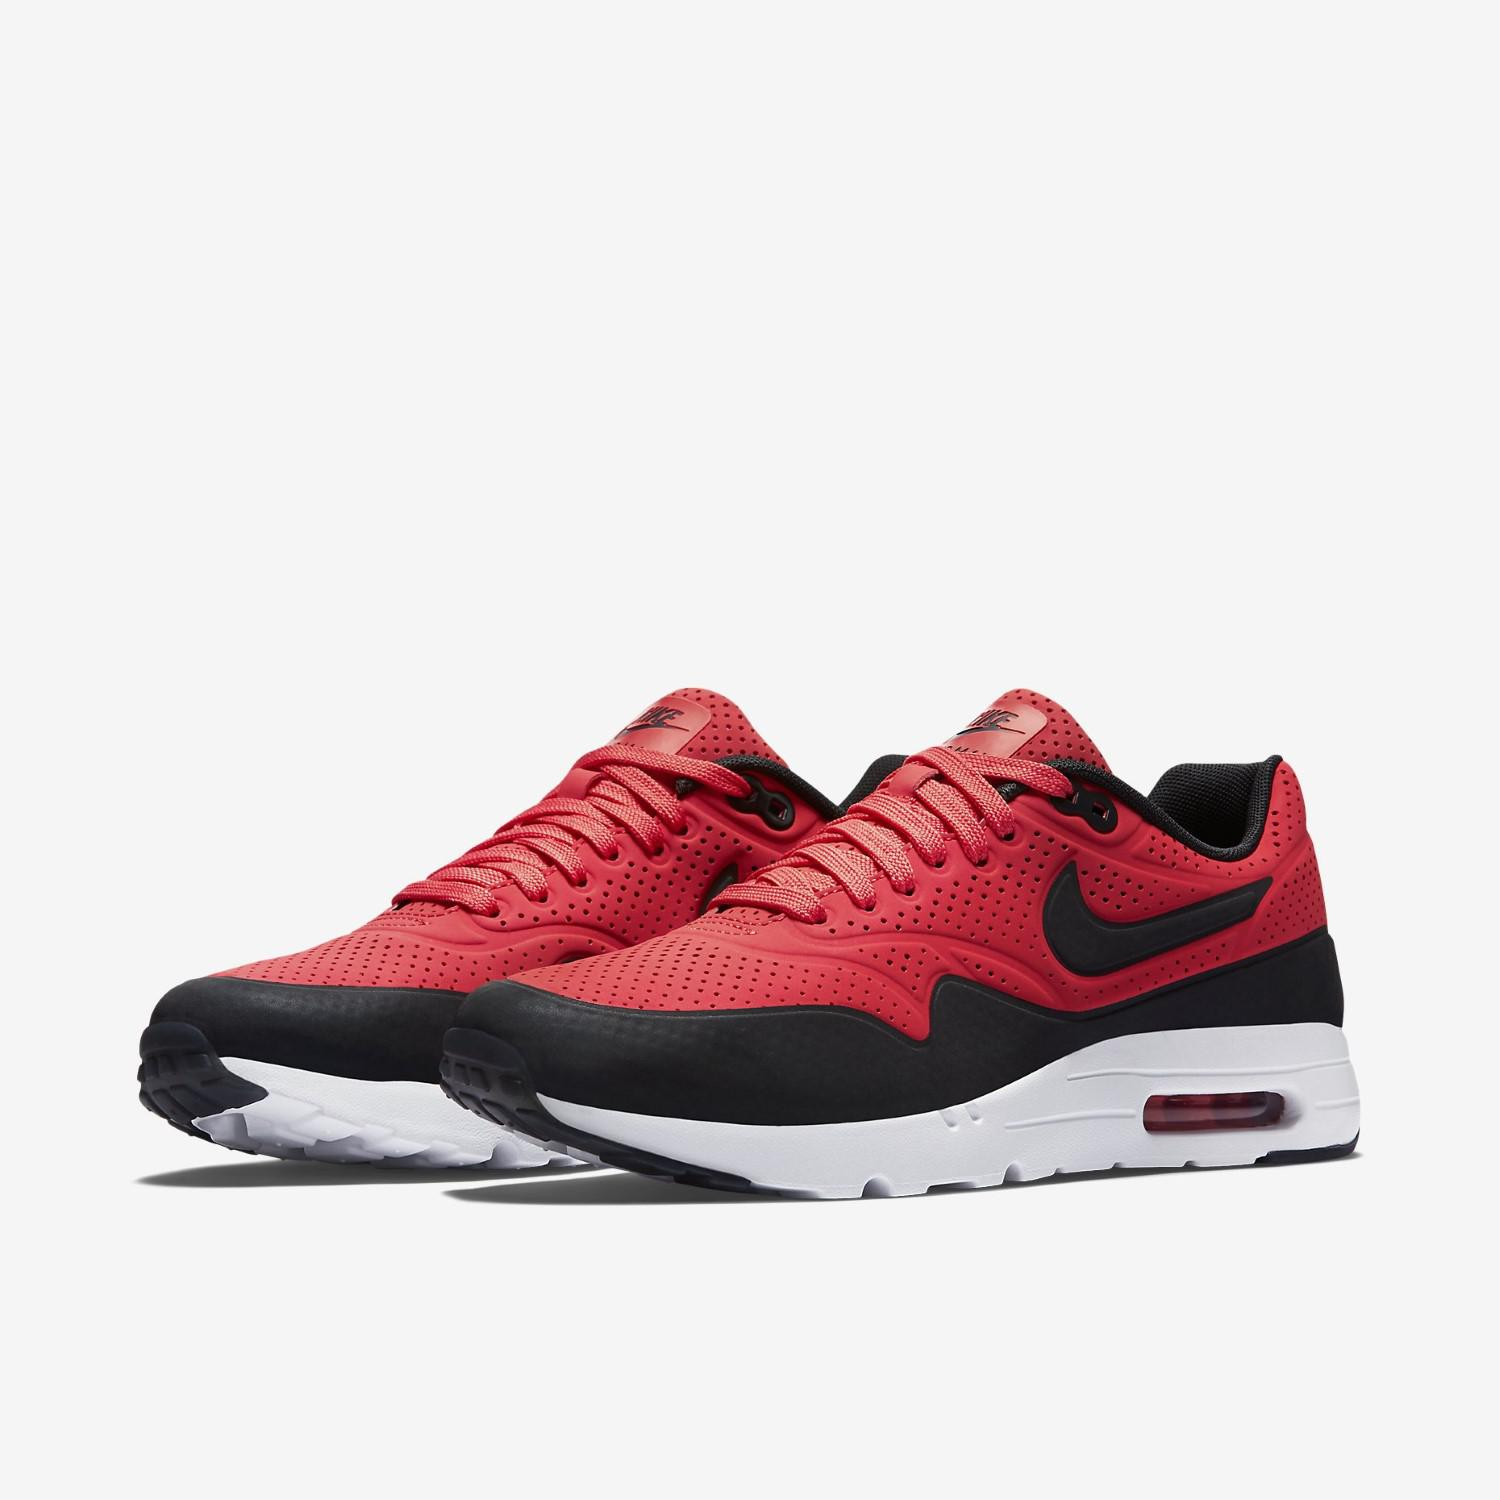 promo code 60c51 1ea66 Lyst - Nike Air Max 1 Ultra Moire Rio white anthracite 705297-601 ...